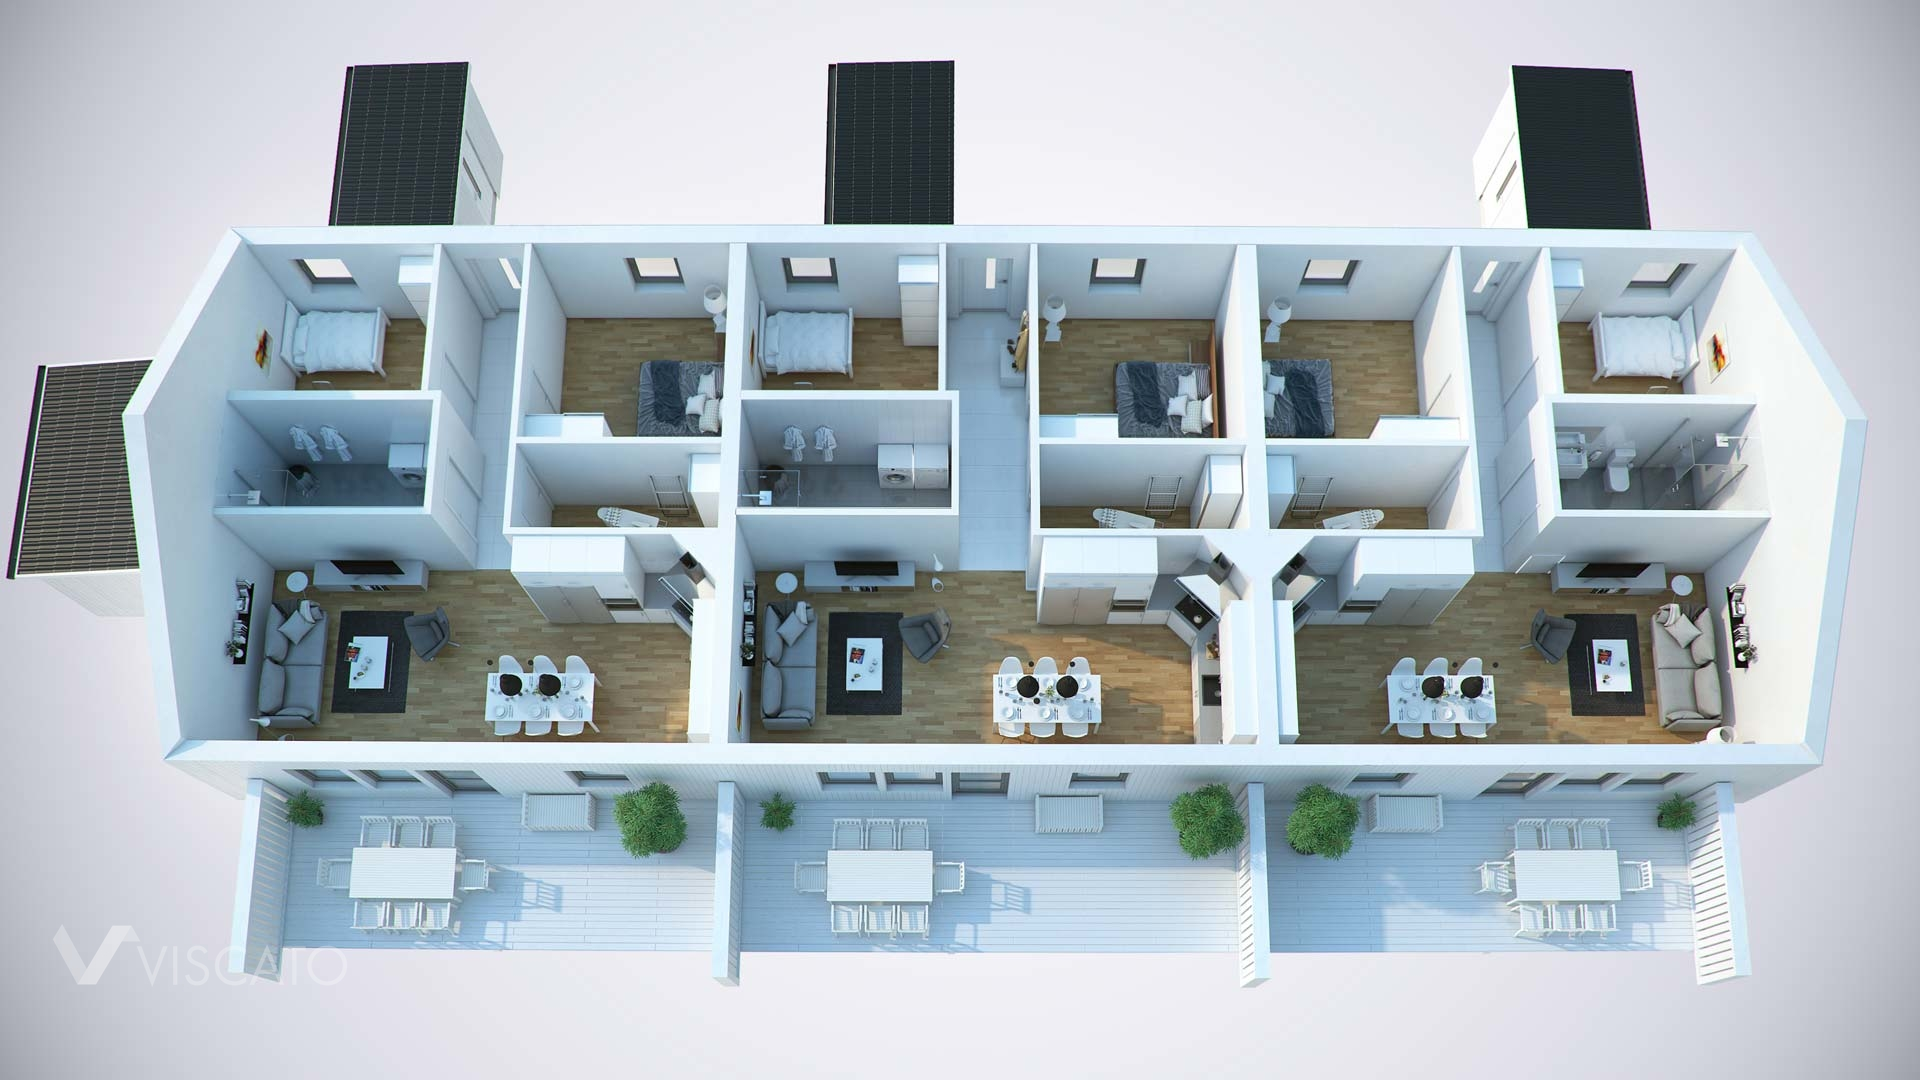 3D visualisation of a floor plan